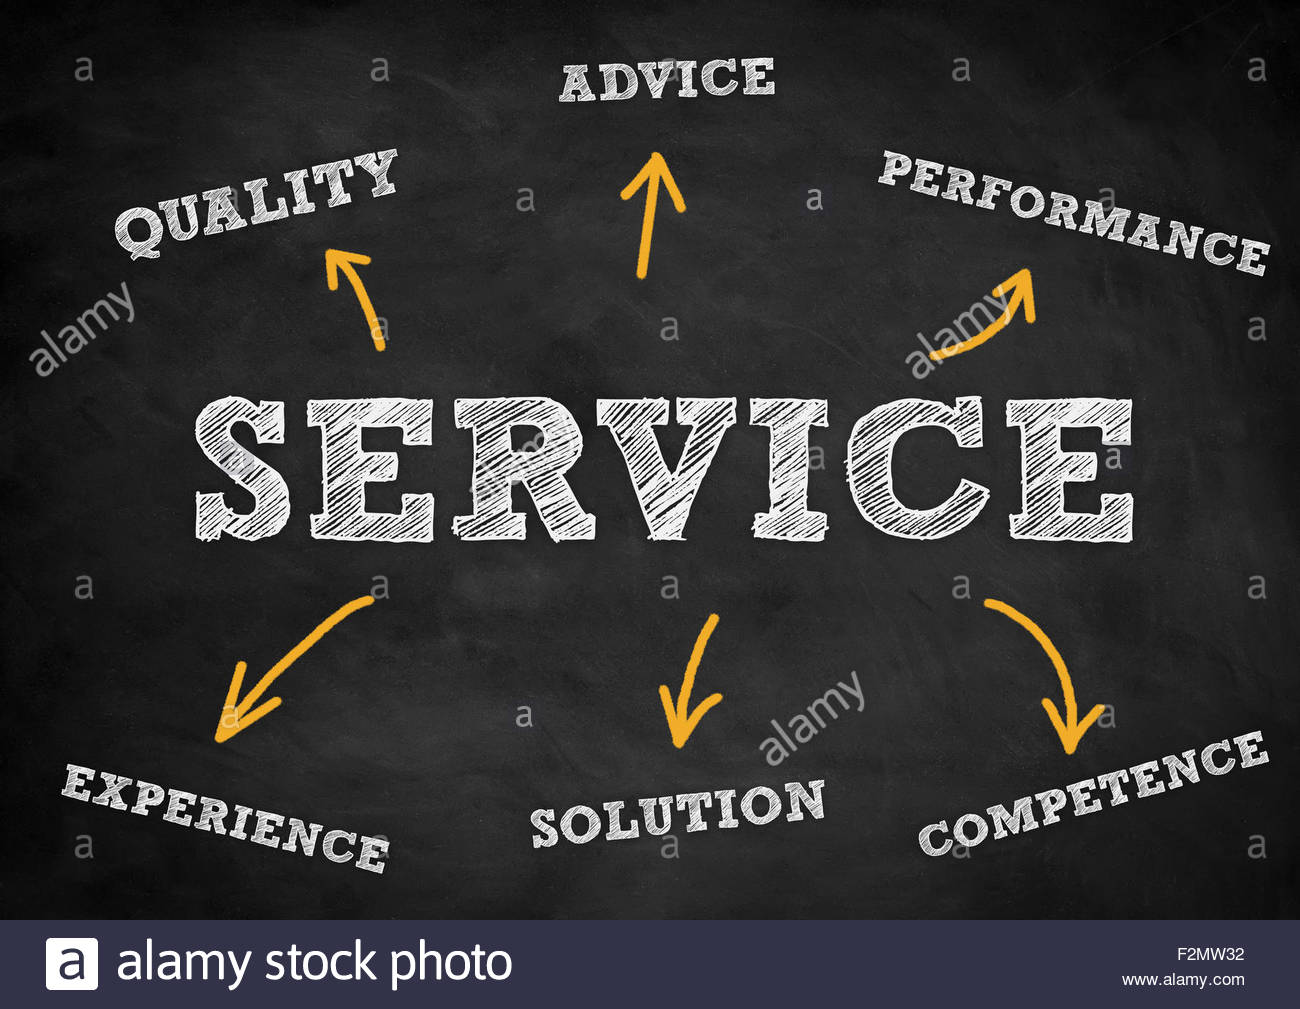 Service support concept - Stock Image